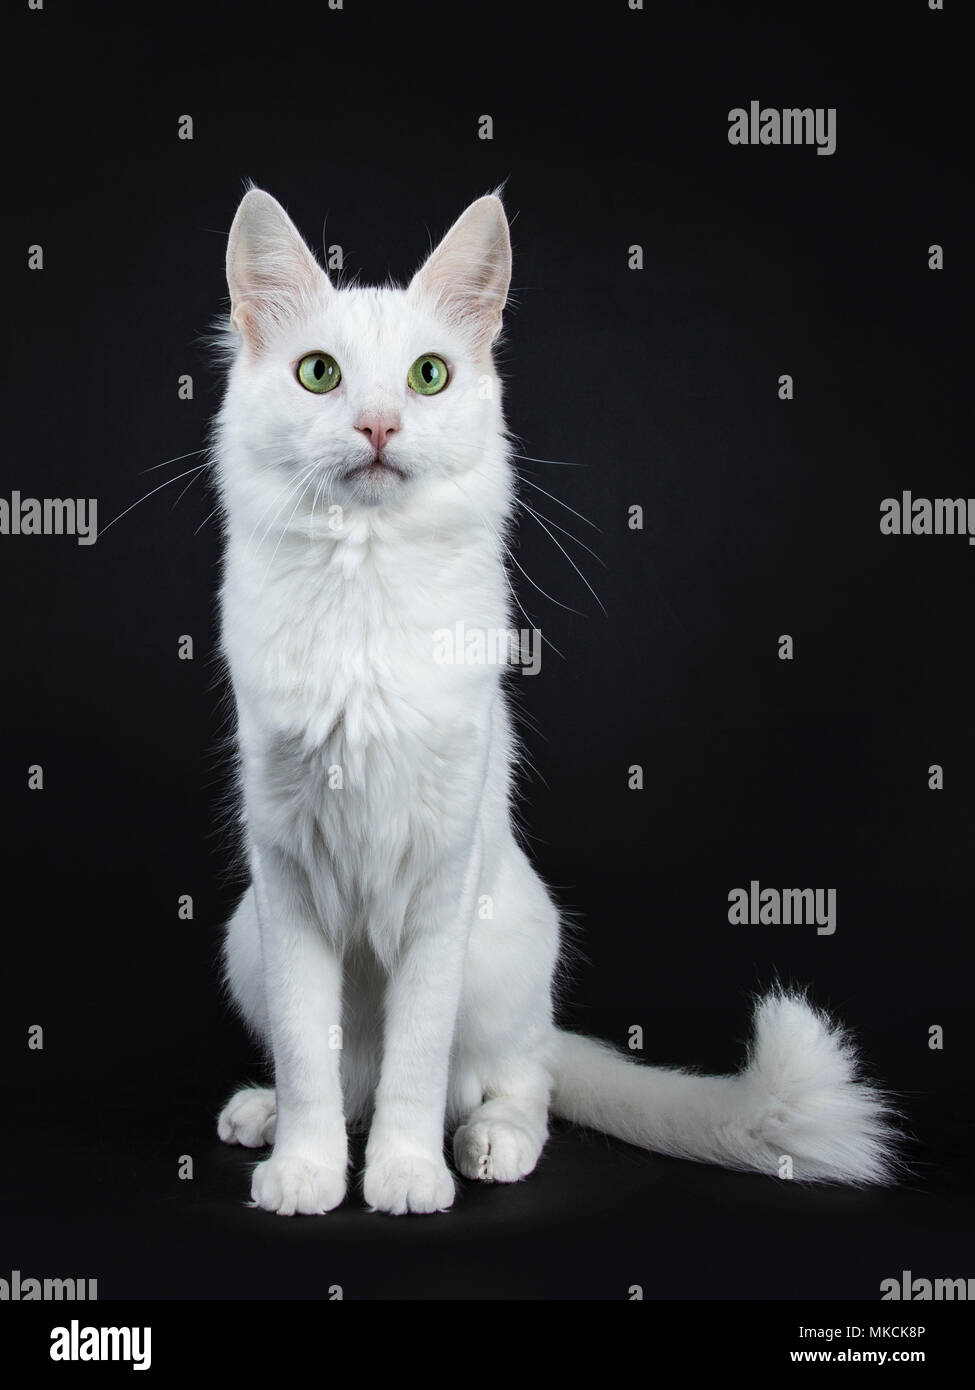 Solid White Turkish Angora Cat With Green Eyes Sitting Facing Front